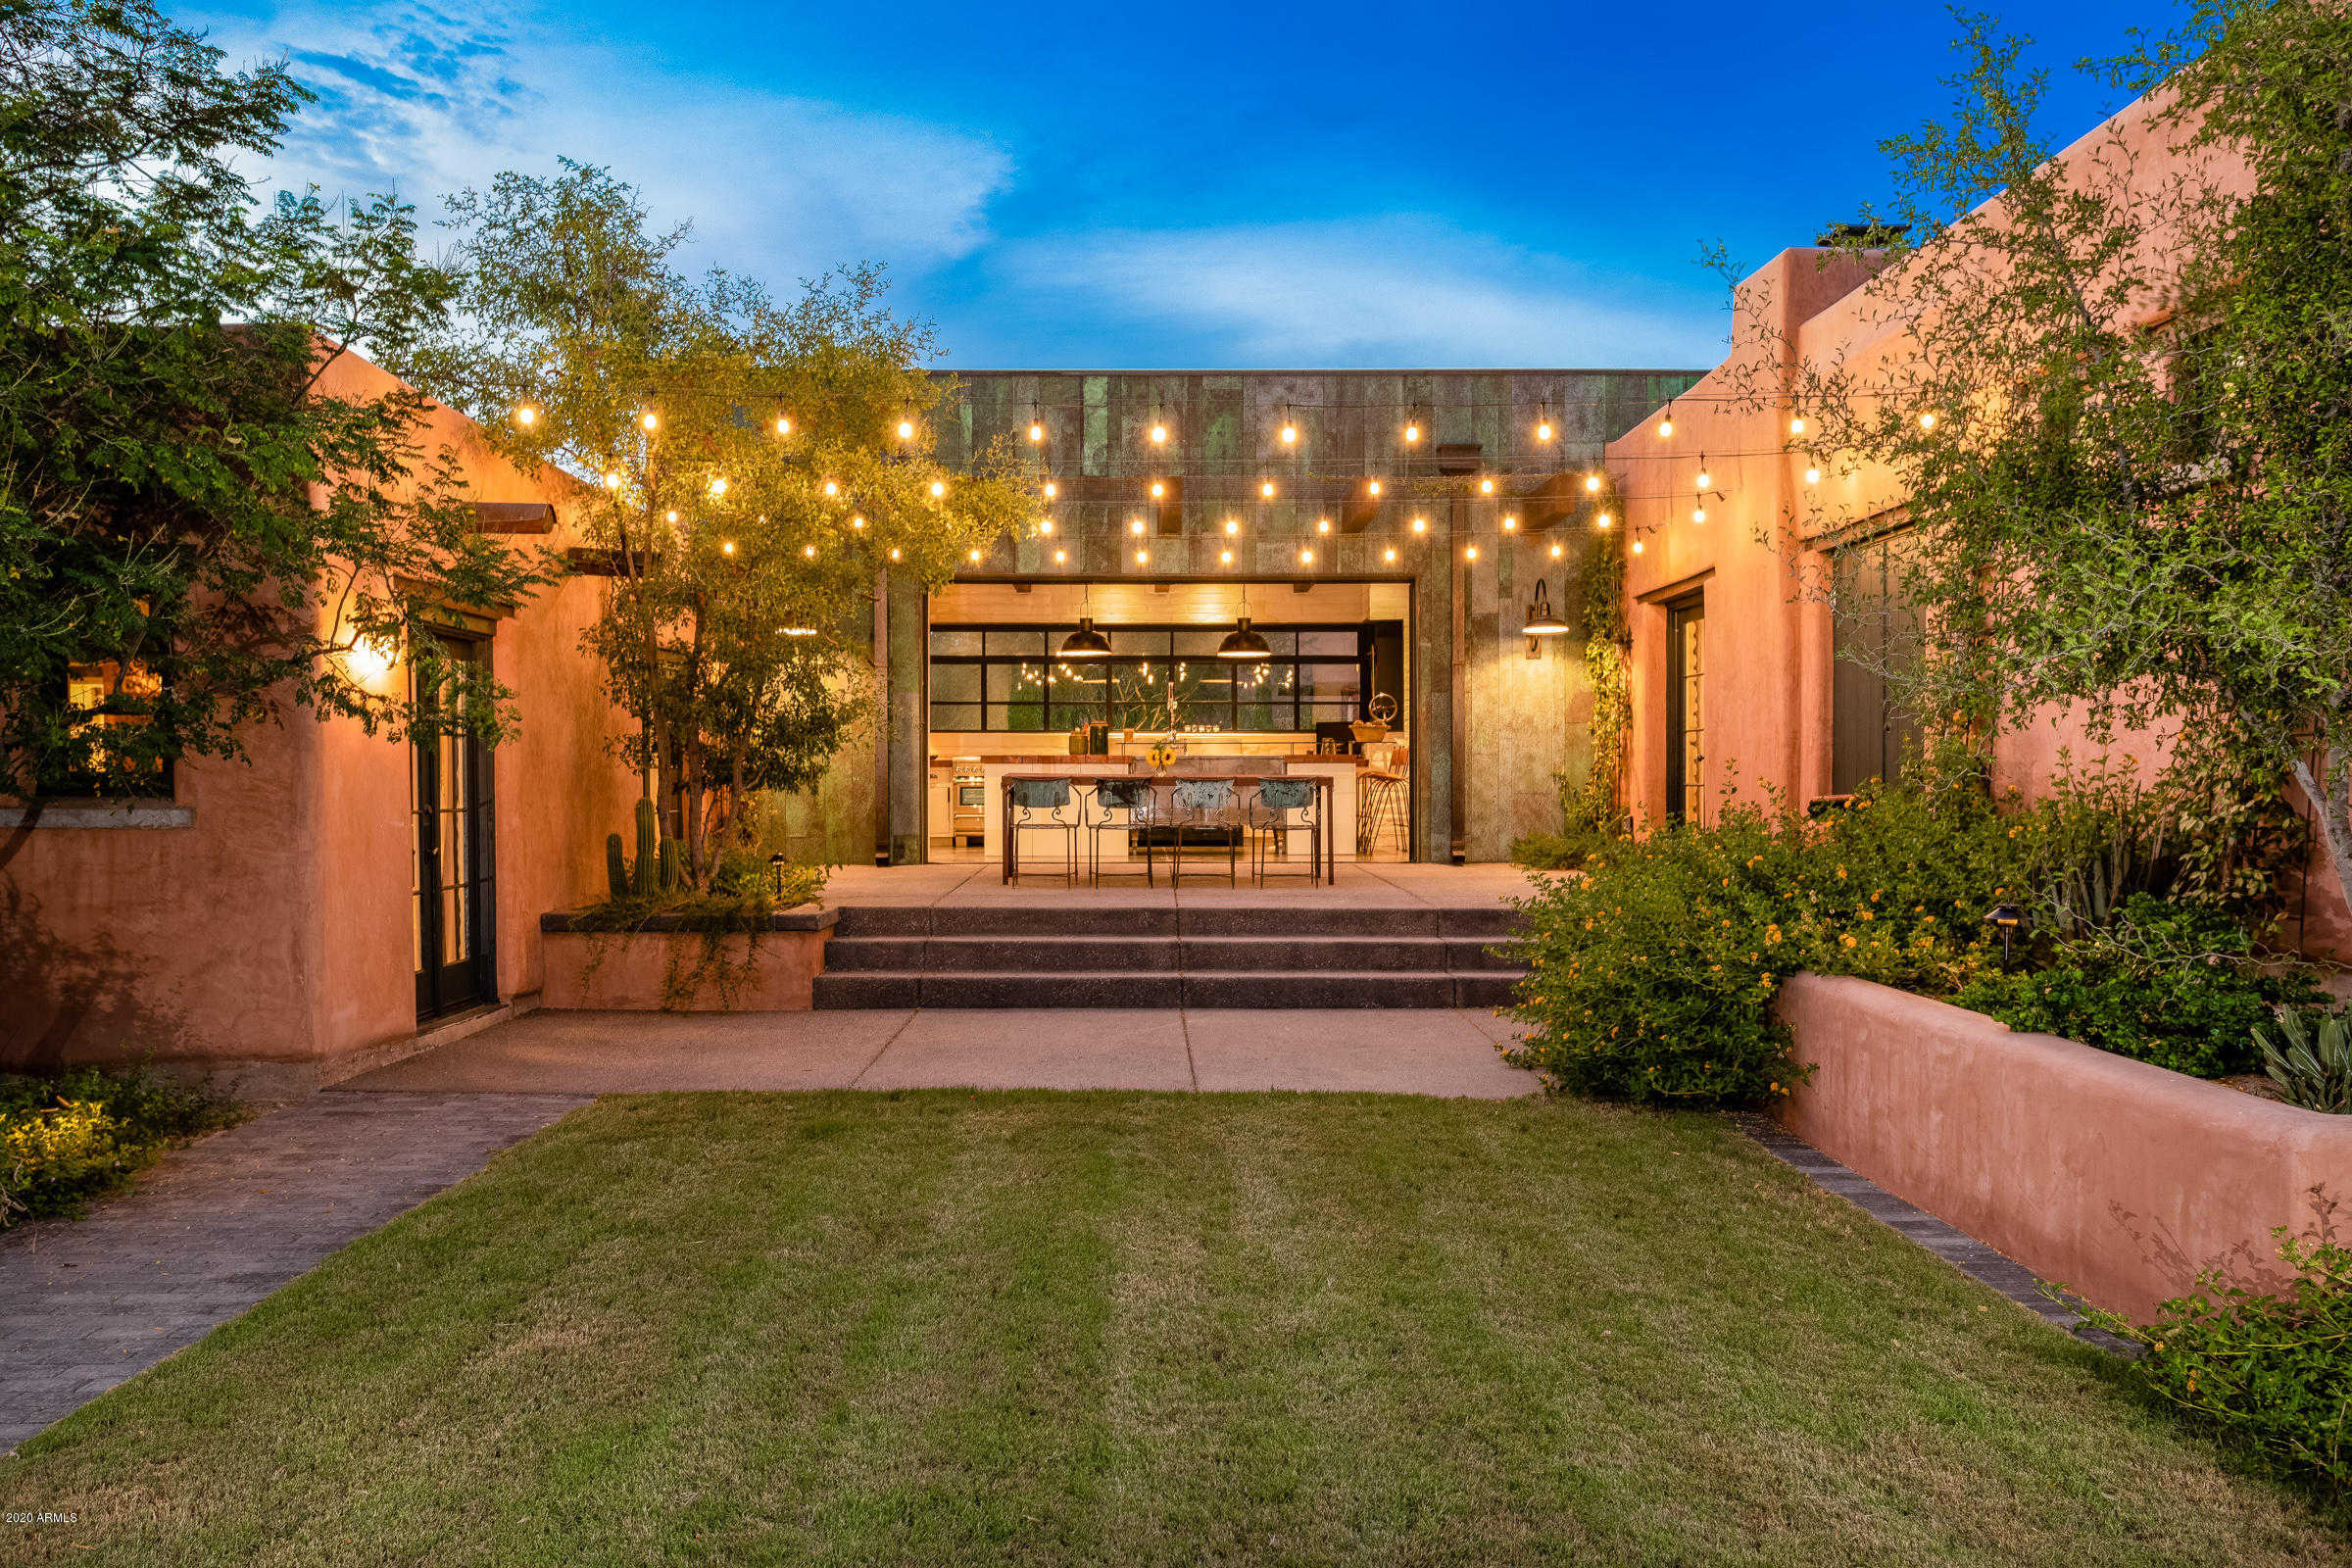 $4,295,000 - 5Br/5Ba - Home for Sale in Meets And Bounds, Paradise Valley